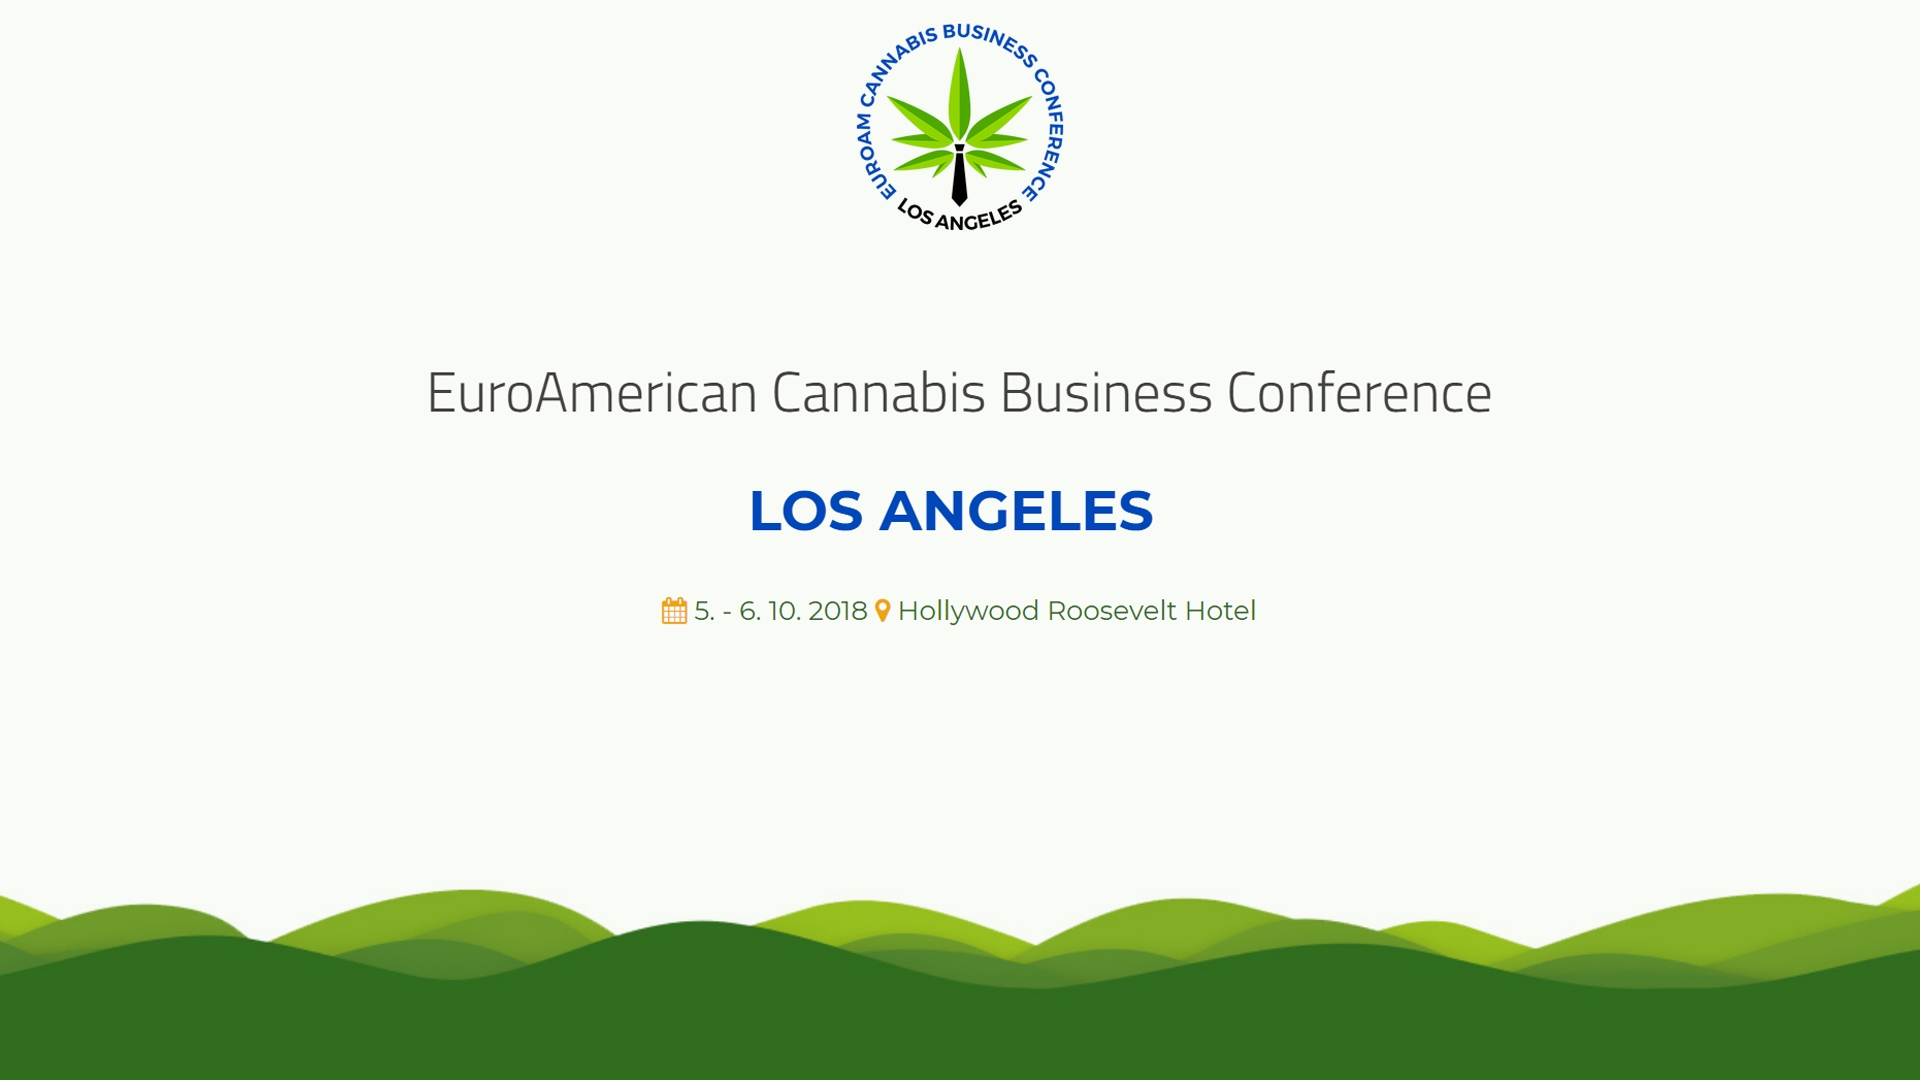 EuroAmerican Cannabis Business Conference